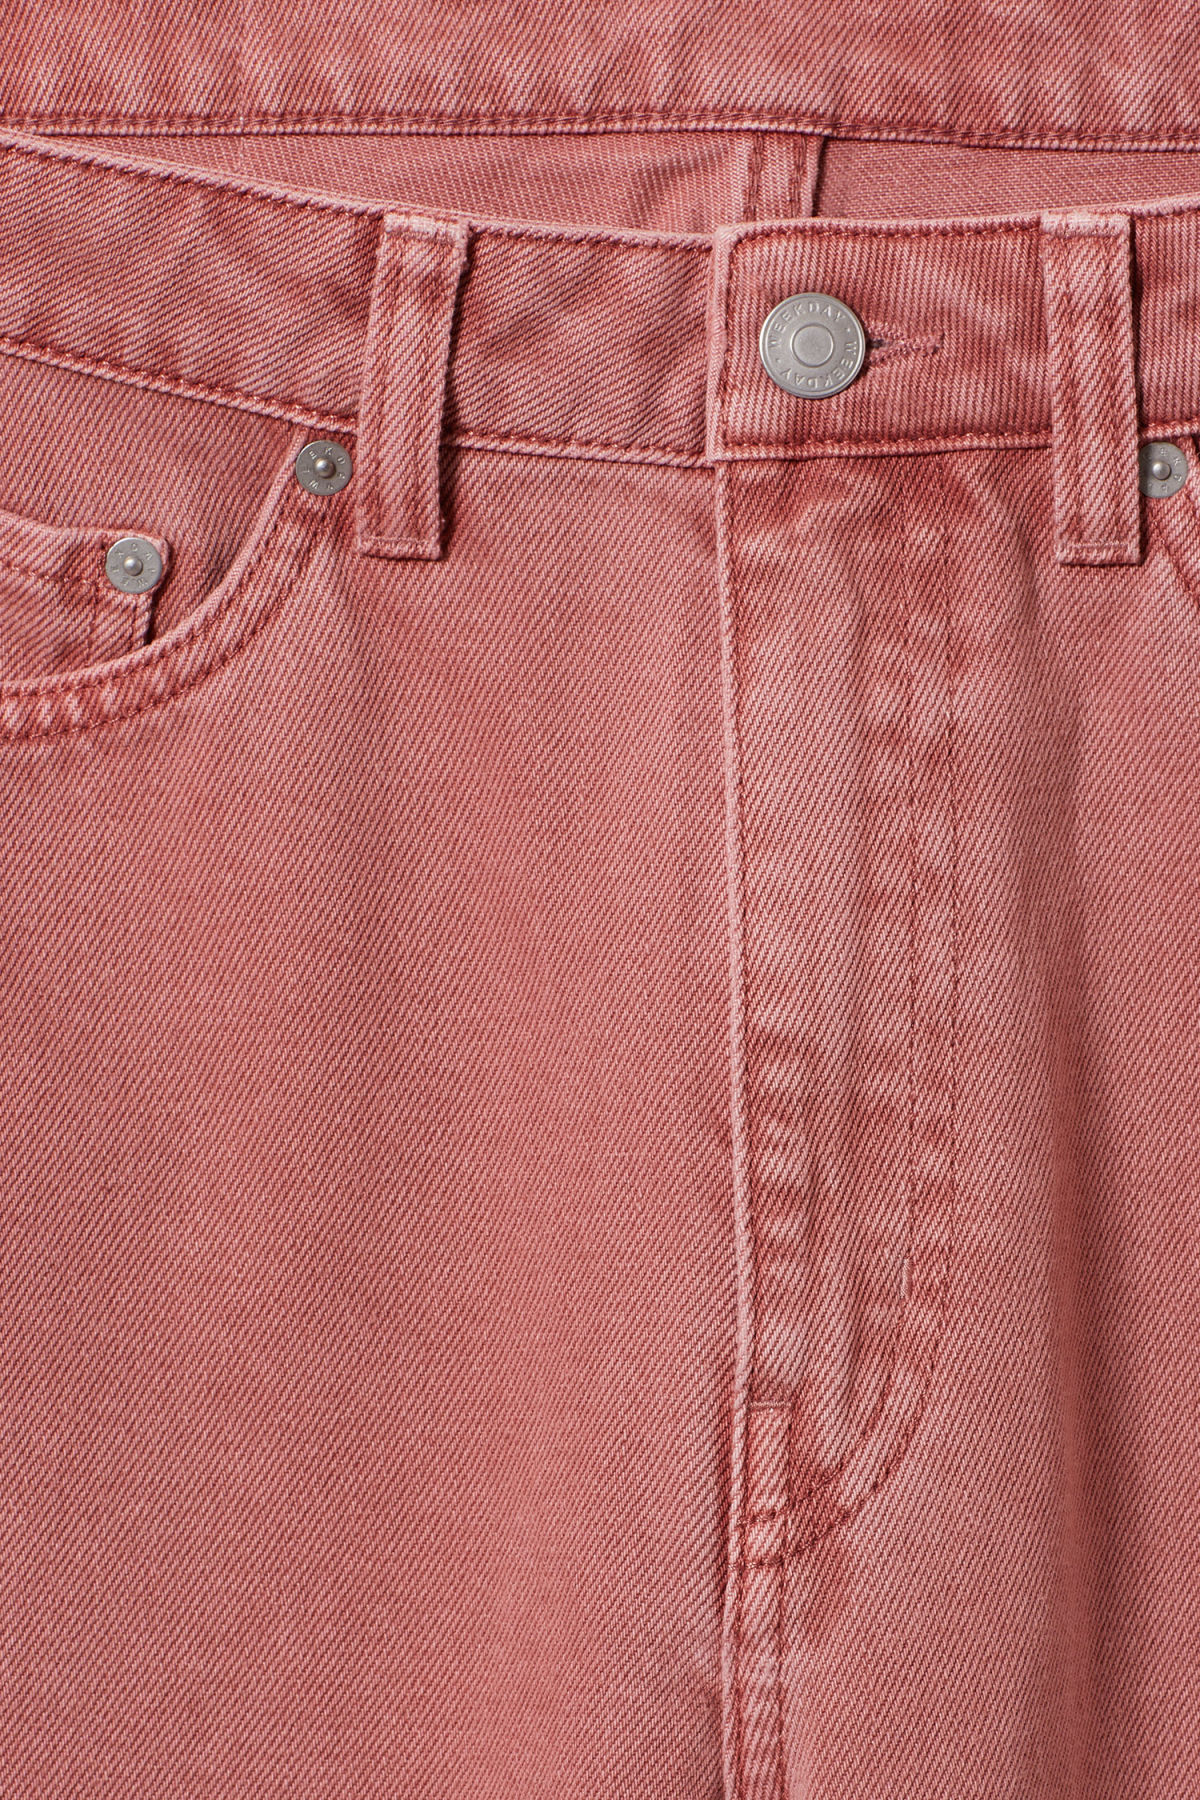 Detailed image of Weekday row rose jeans in orange